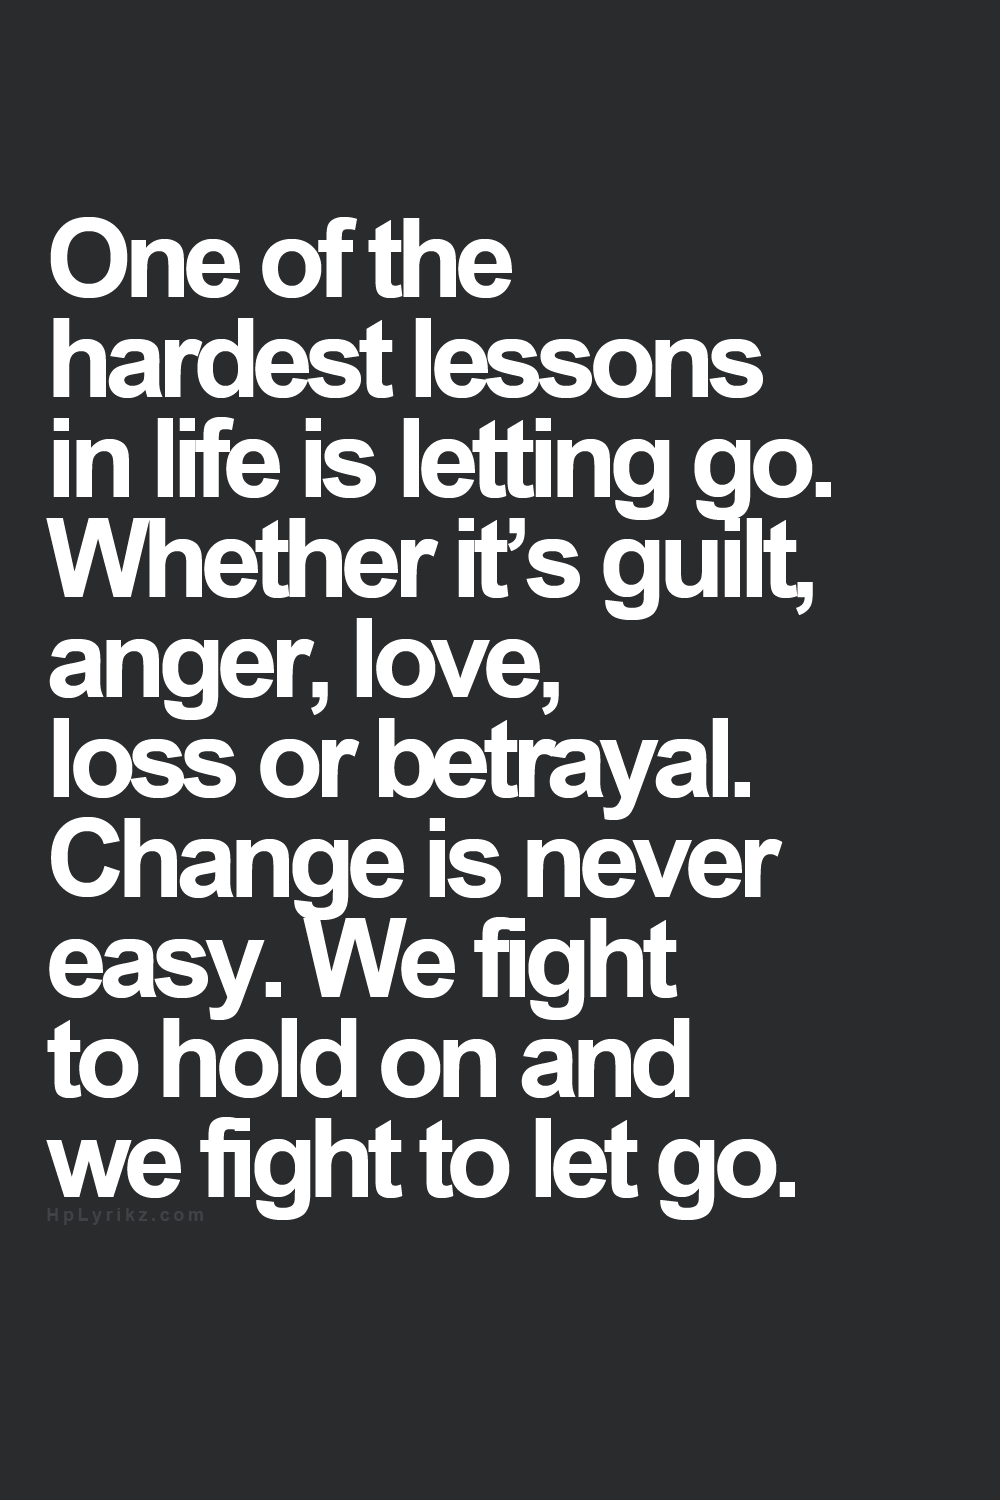 Short Inspiring Quotes How To Fix A Relationship Problems Relationship Advice Marriage Counseling Famous Quotes Network Explore Discover The Best And The Most Trending Quotes And Sayings